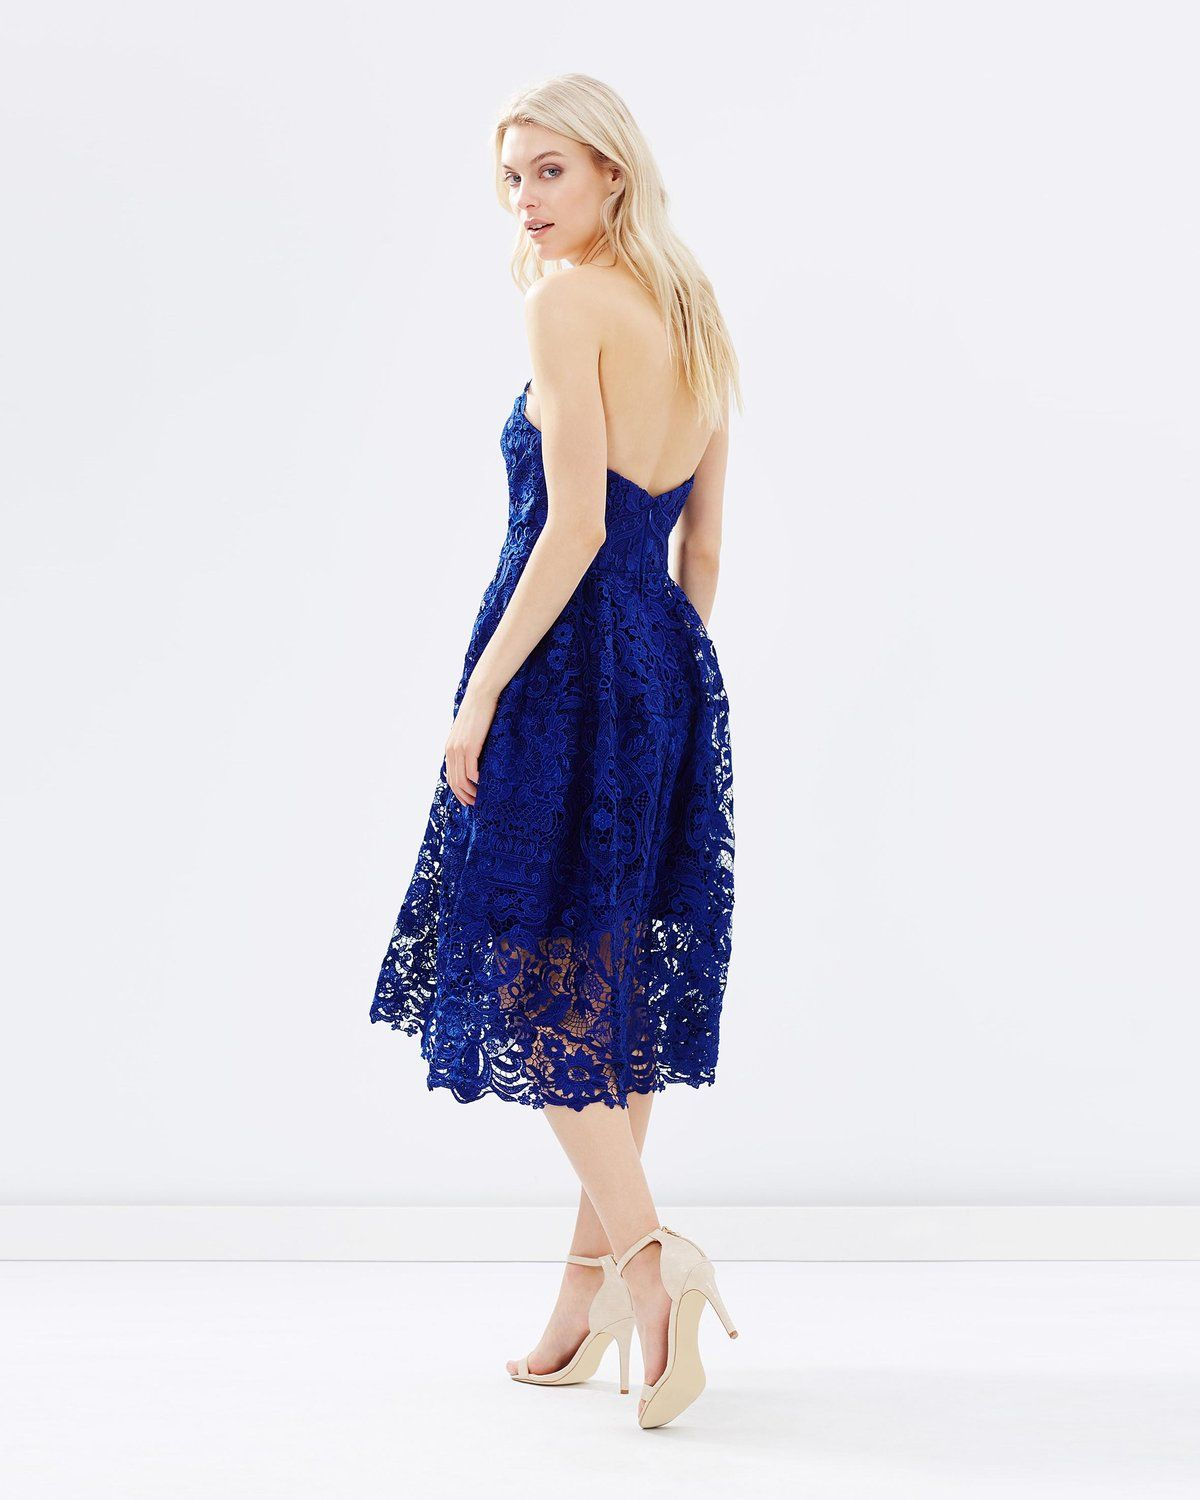 Thurley wedding dress  delicate navy lace bridesmaid dress by Thurley with flattering